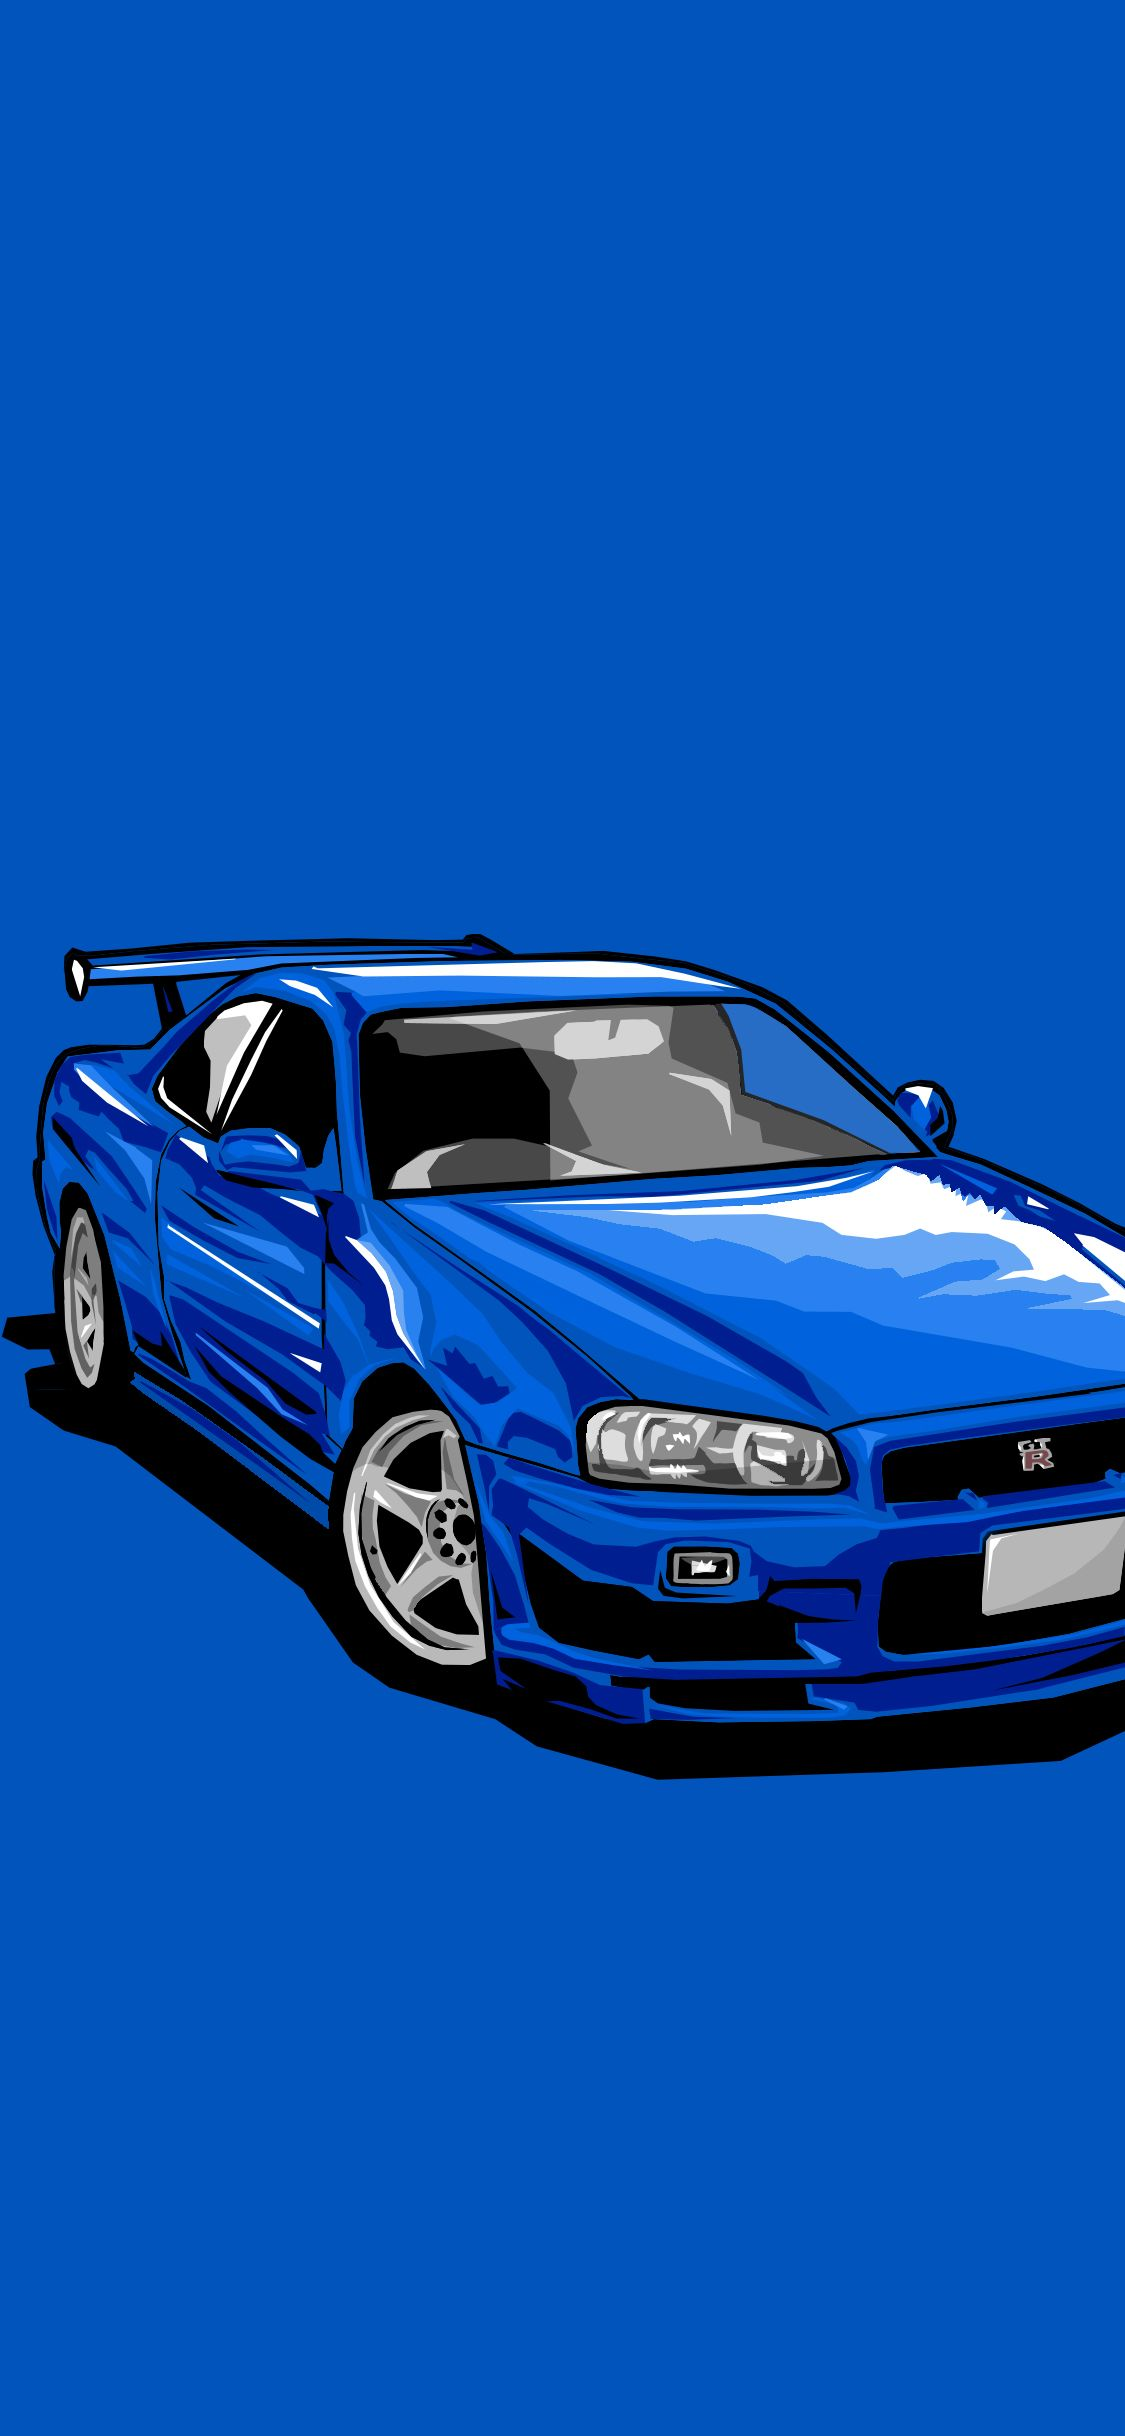 Blue Car Iphone Wallpapers Top Free Blue Car Iphone Backgrounds Wallpaperaccess